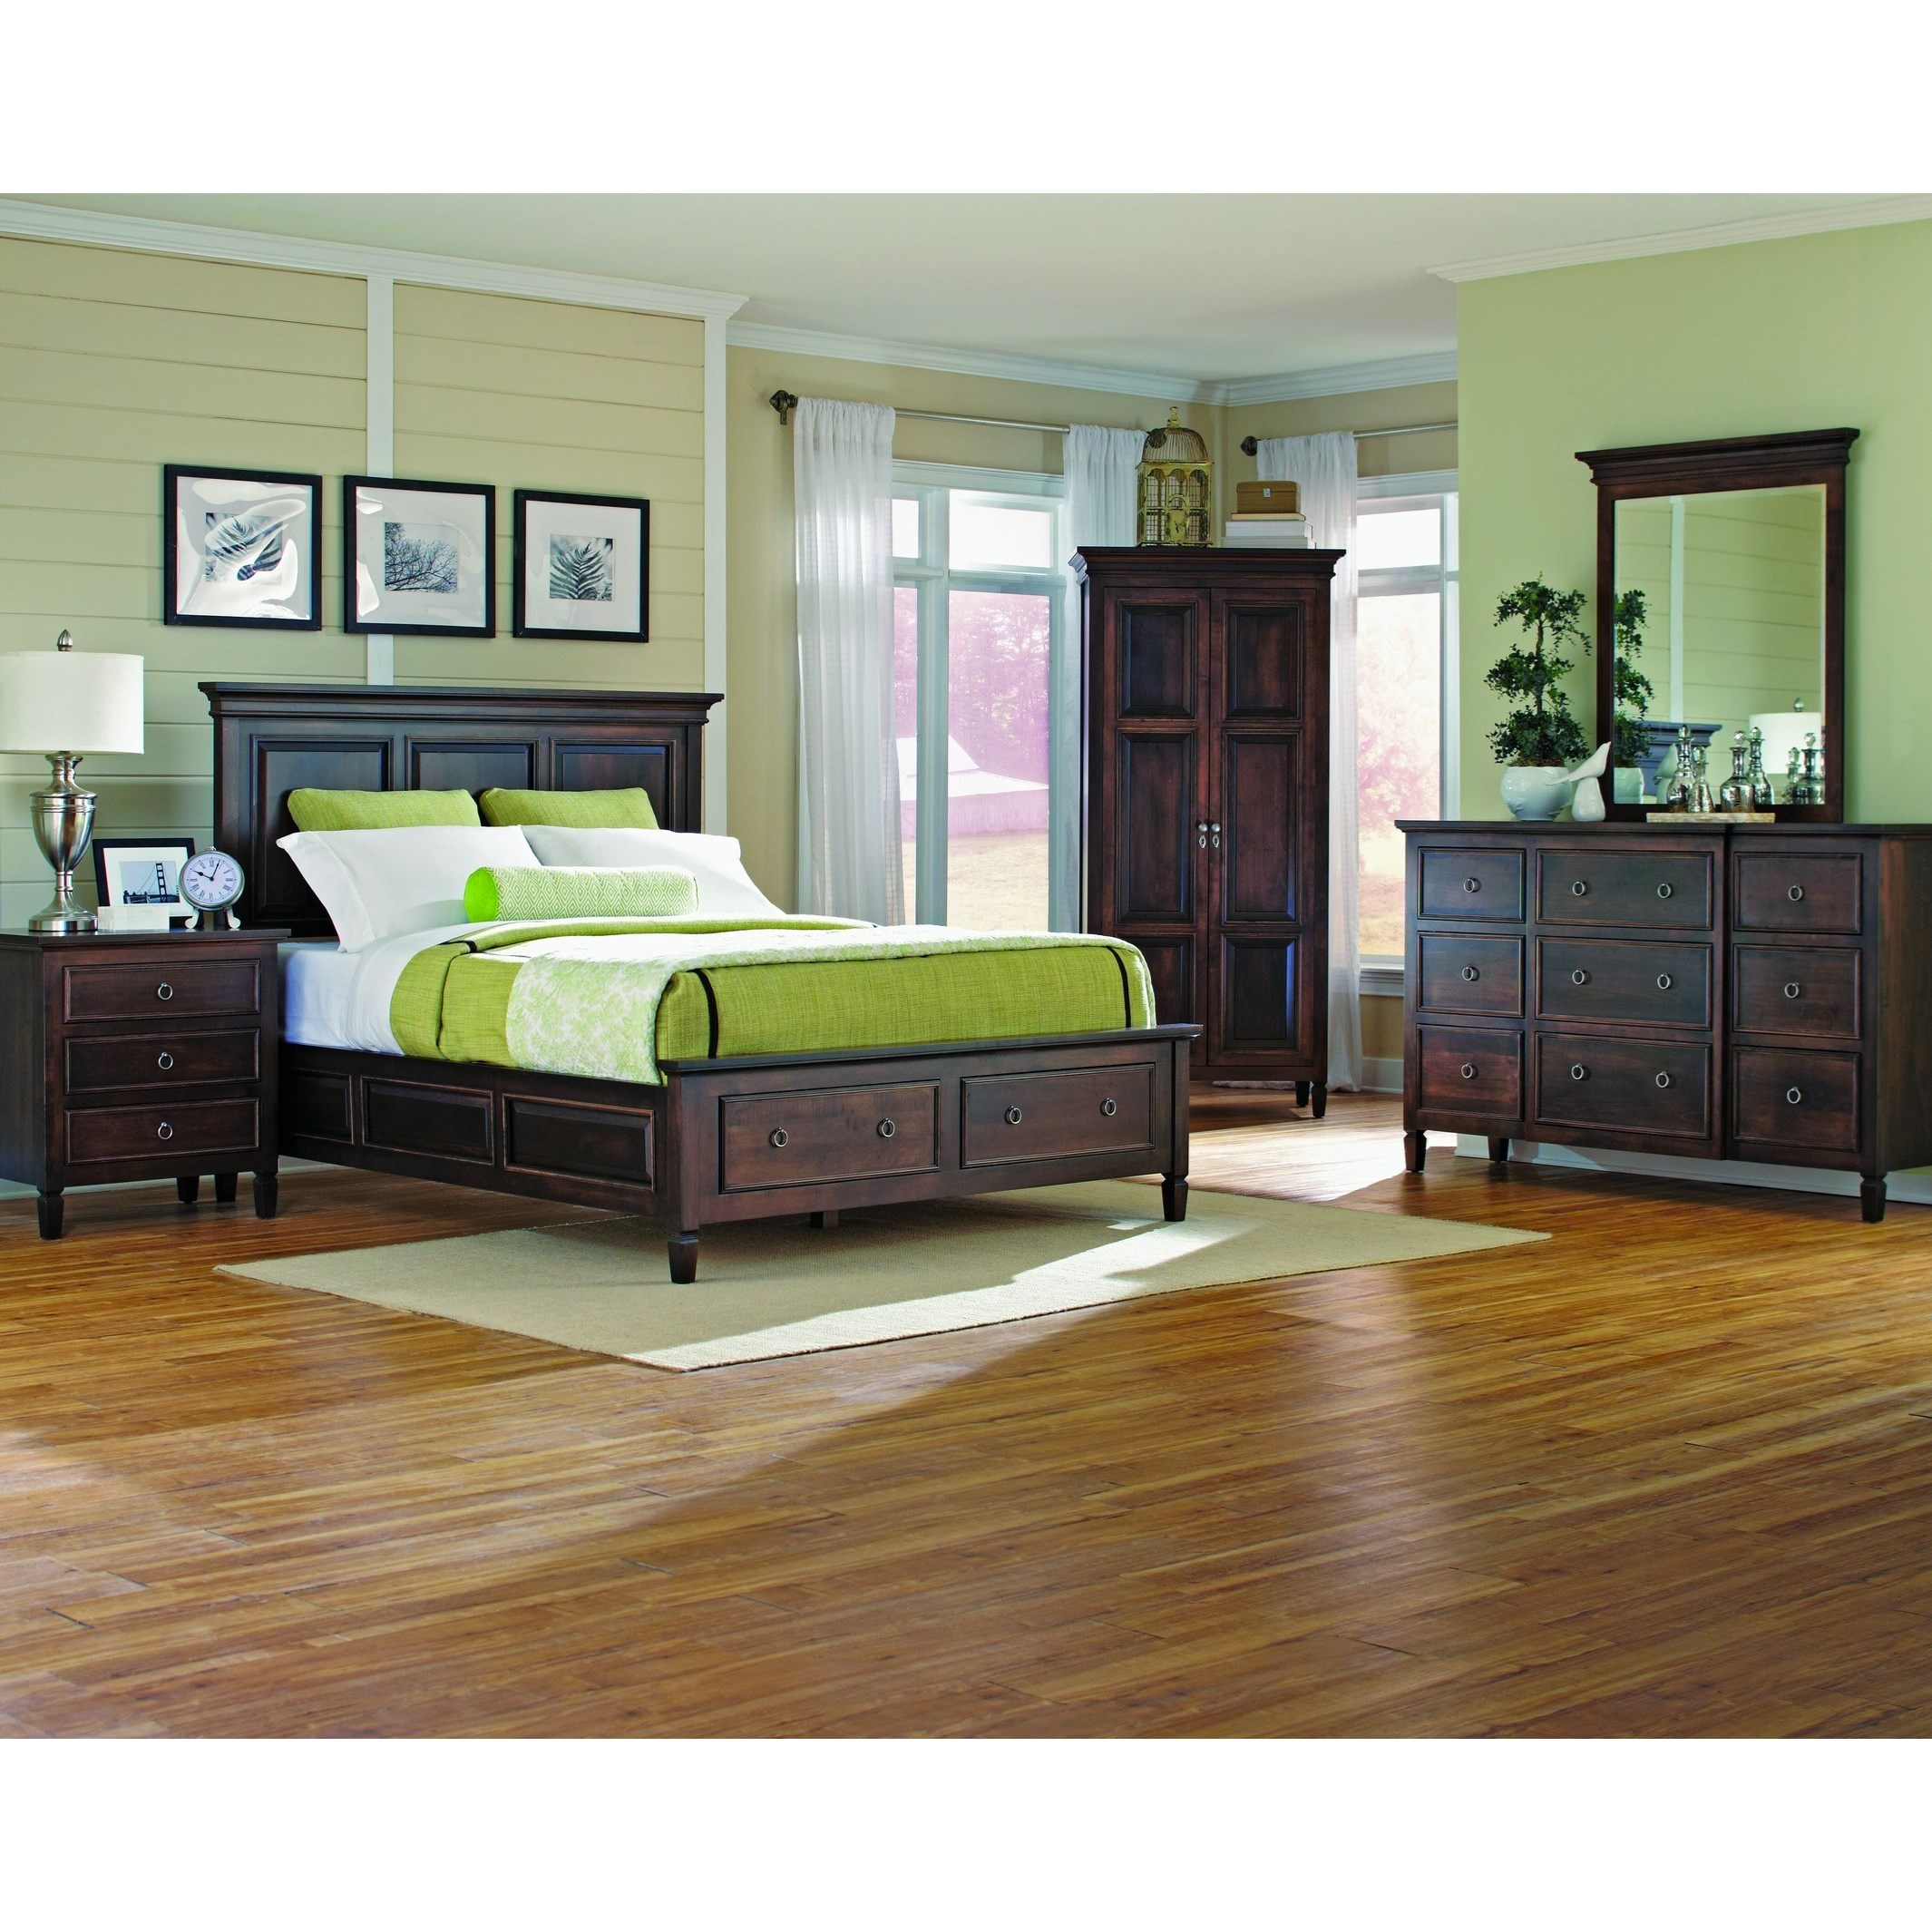 Palettes By Winesburg Vineyard Haven Wardrobe Powell S